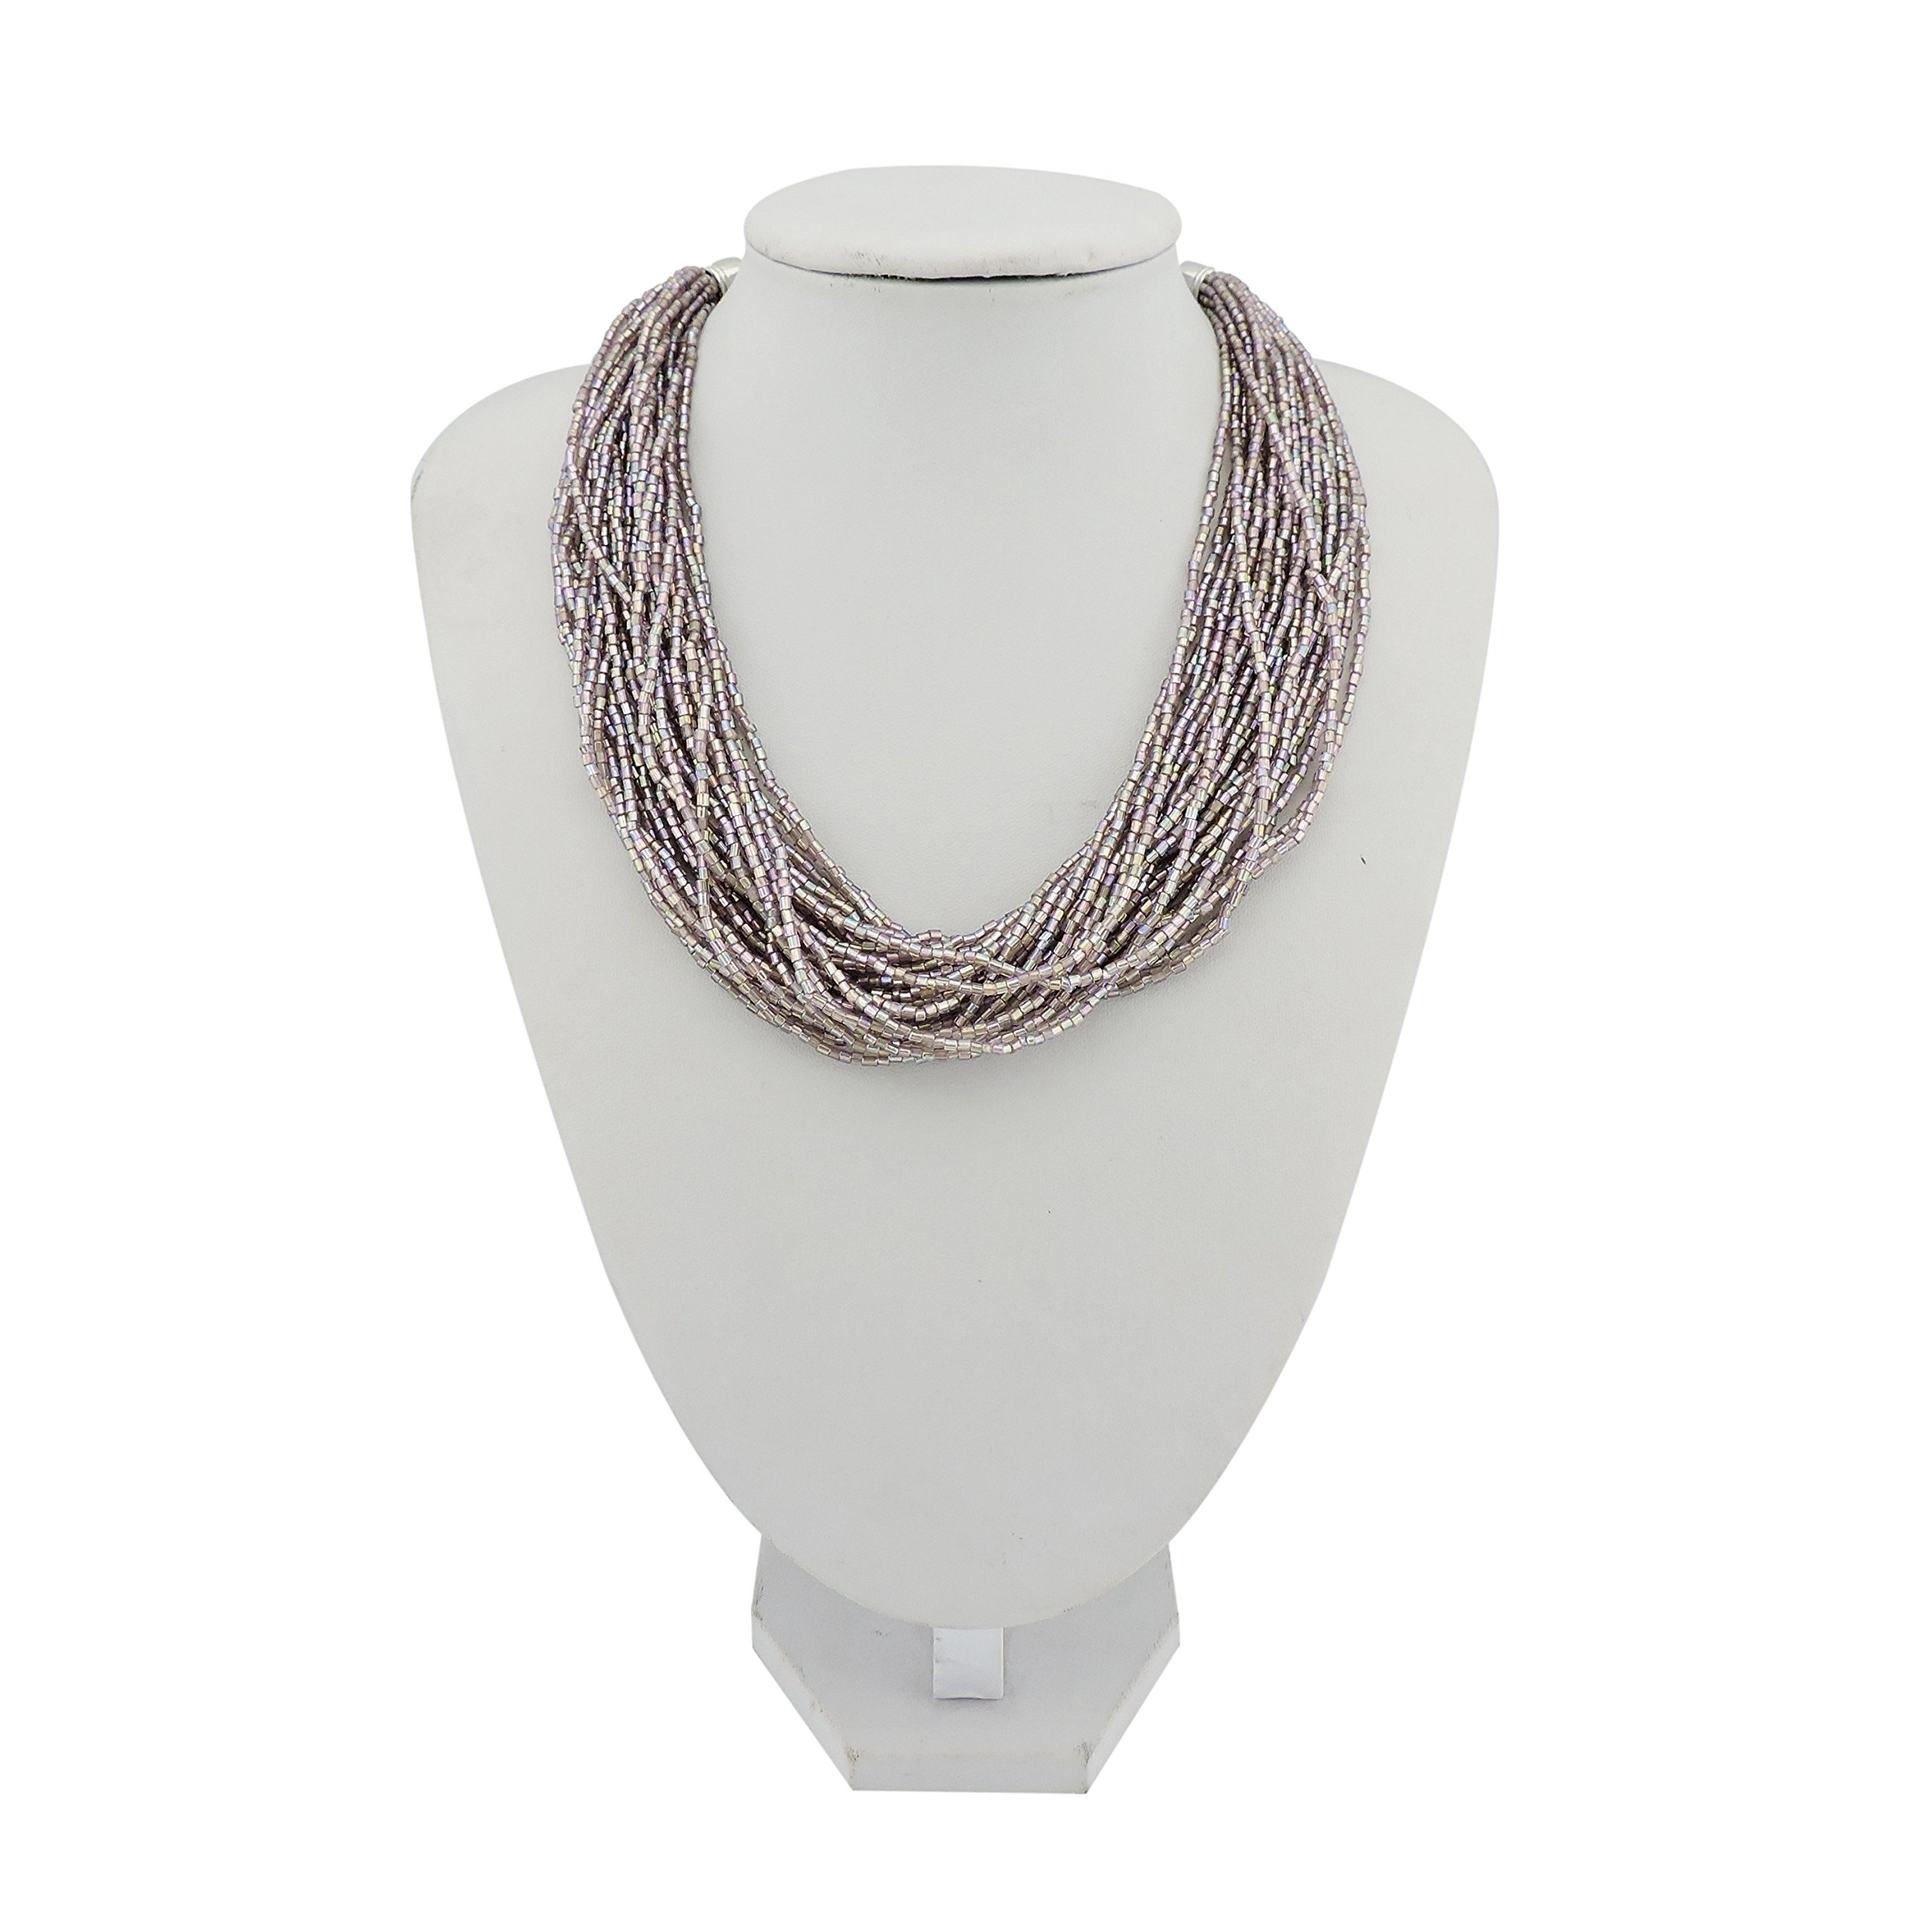 Bocar Multiple Strand Handmade Beaded 16'' Statement Collar Necklace for Women with Gift Box (NK-10402-AB purple)